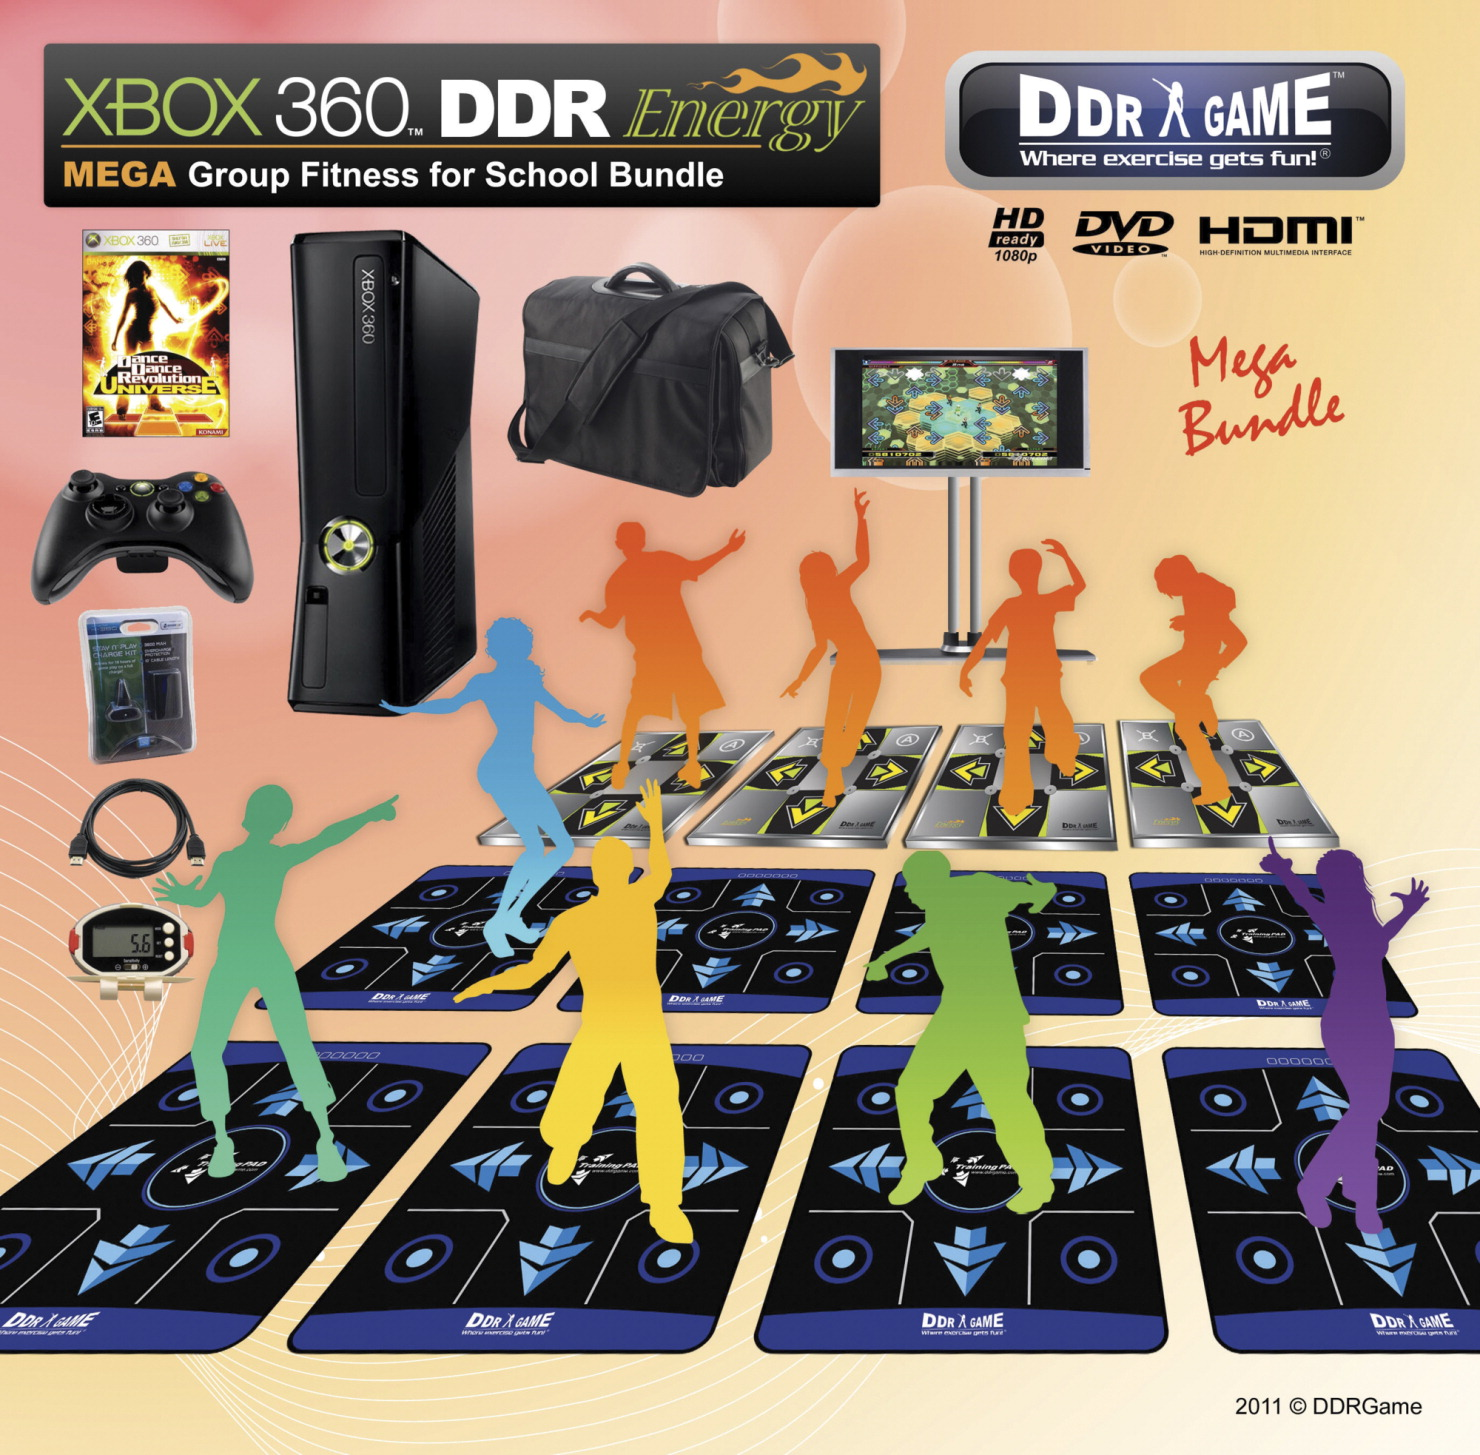 XBOX 360 DDR Energy MEGA Group Fitness for A Class Bundle